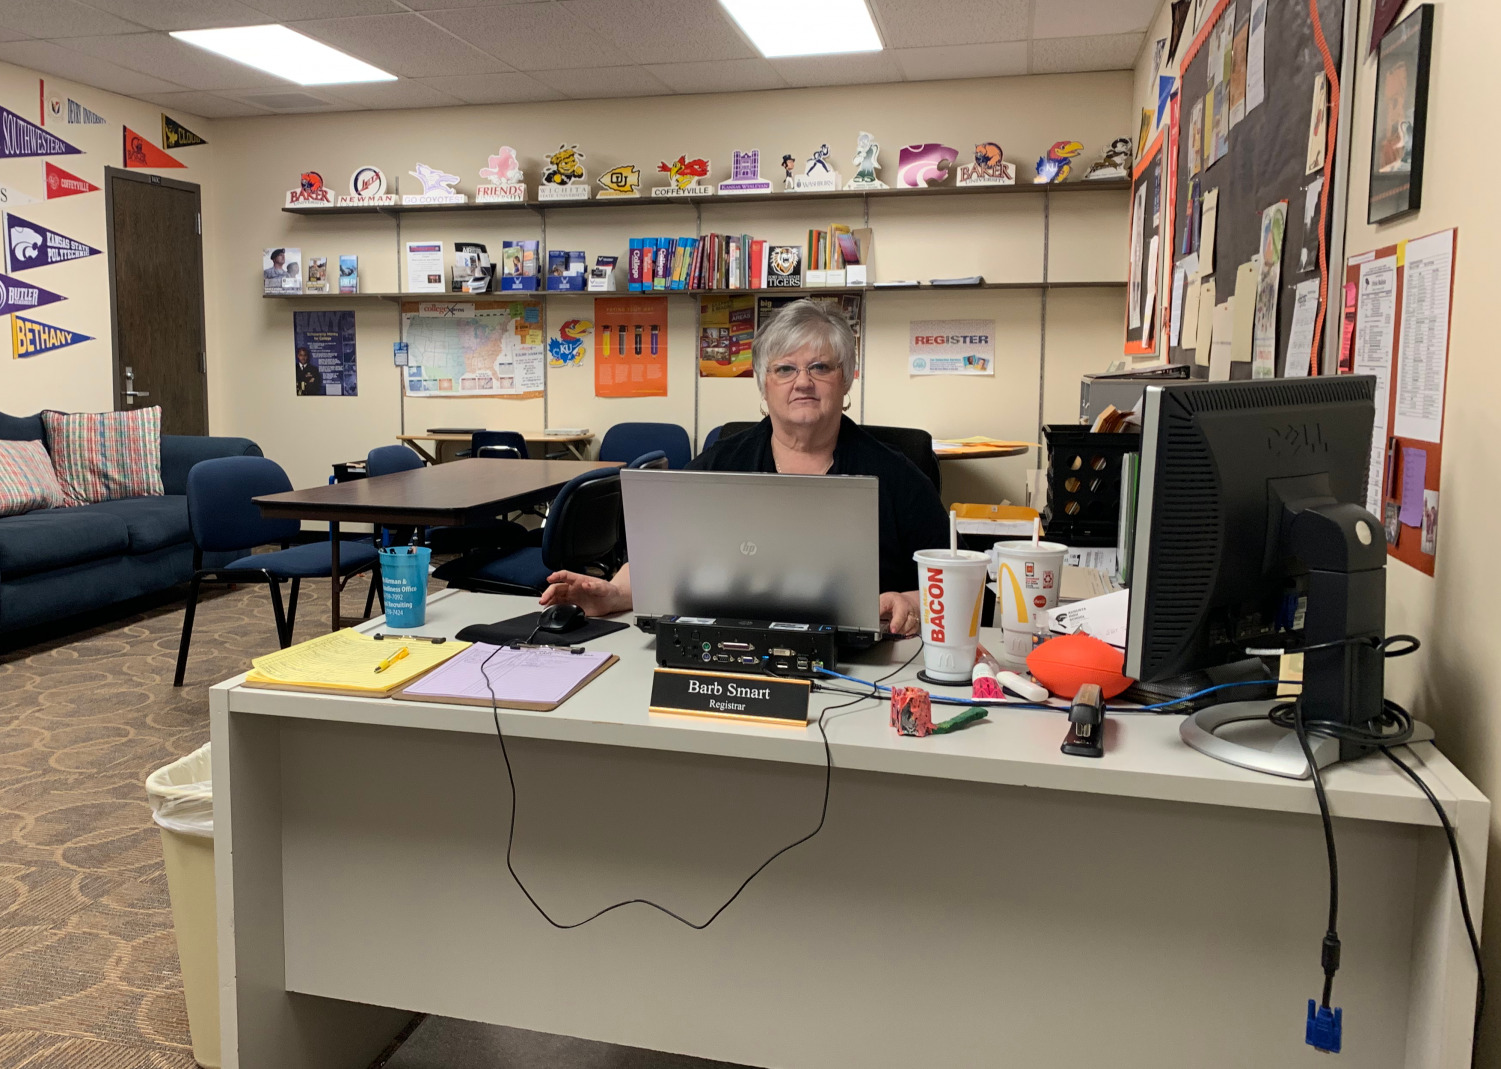 Registrar Barb Smart helps students arrange meetings with the counselors. They must sign up on the purple or yellow sheet depending on which counselor the student would like to meet. Photo by Paige Harrington